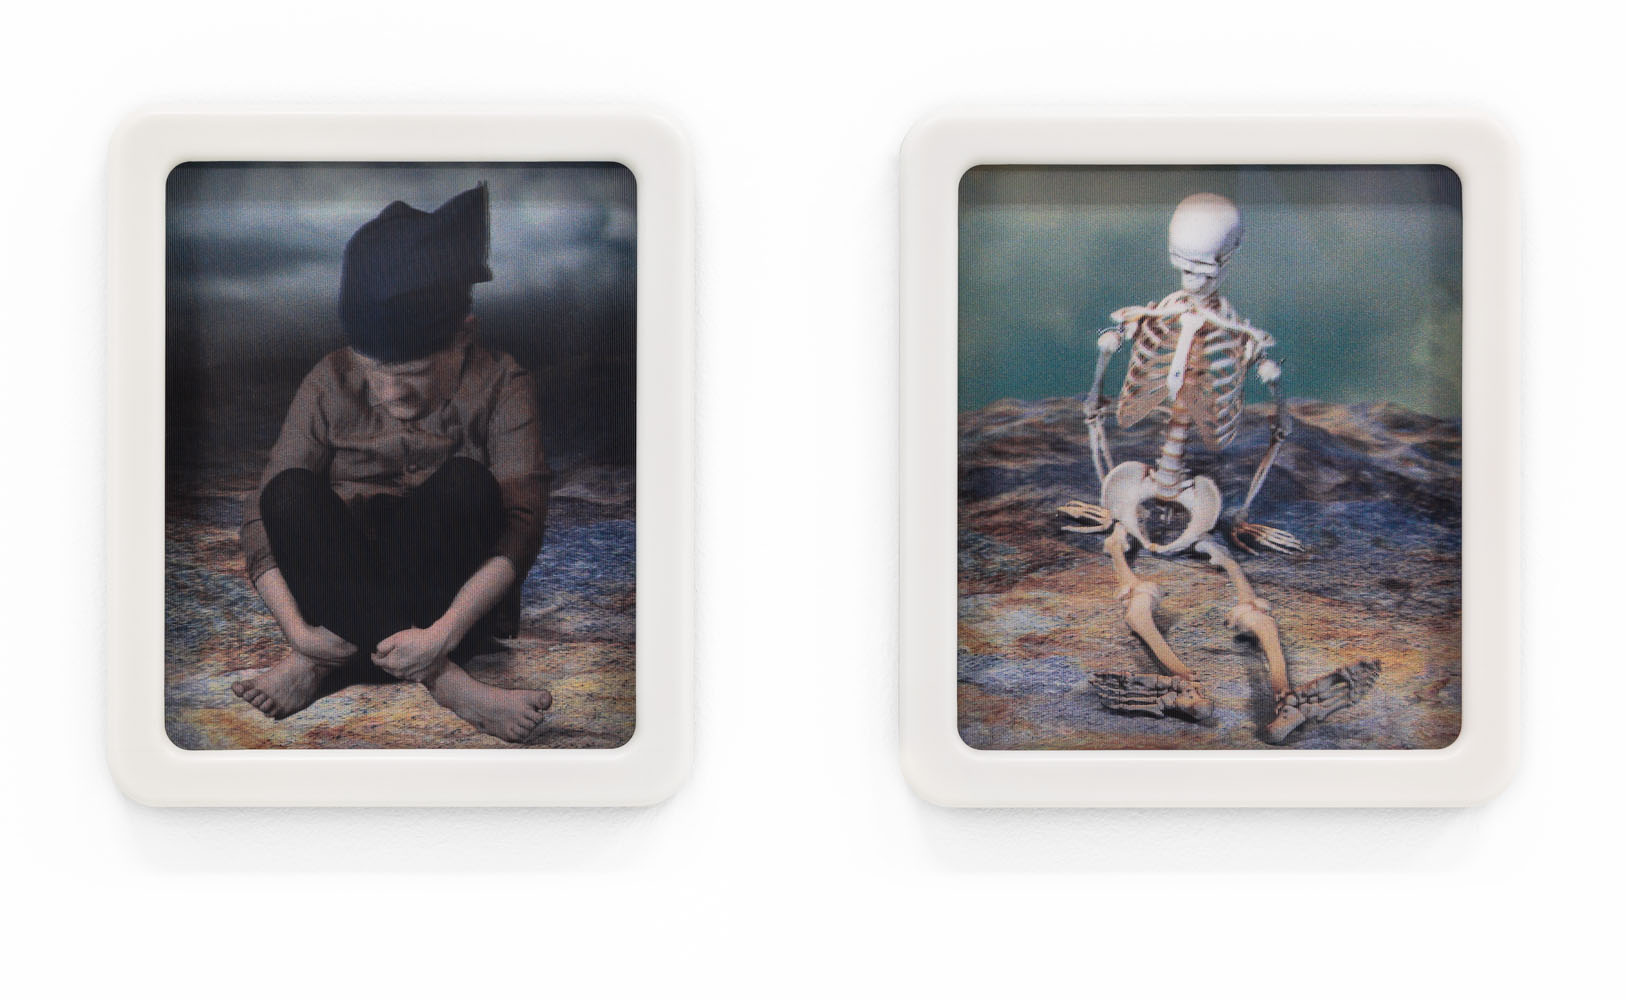 Diptych, 2014, lenticular print, frame in walnut and corian, 48 x 39 cm and 48 x 43 cm, edition of 3